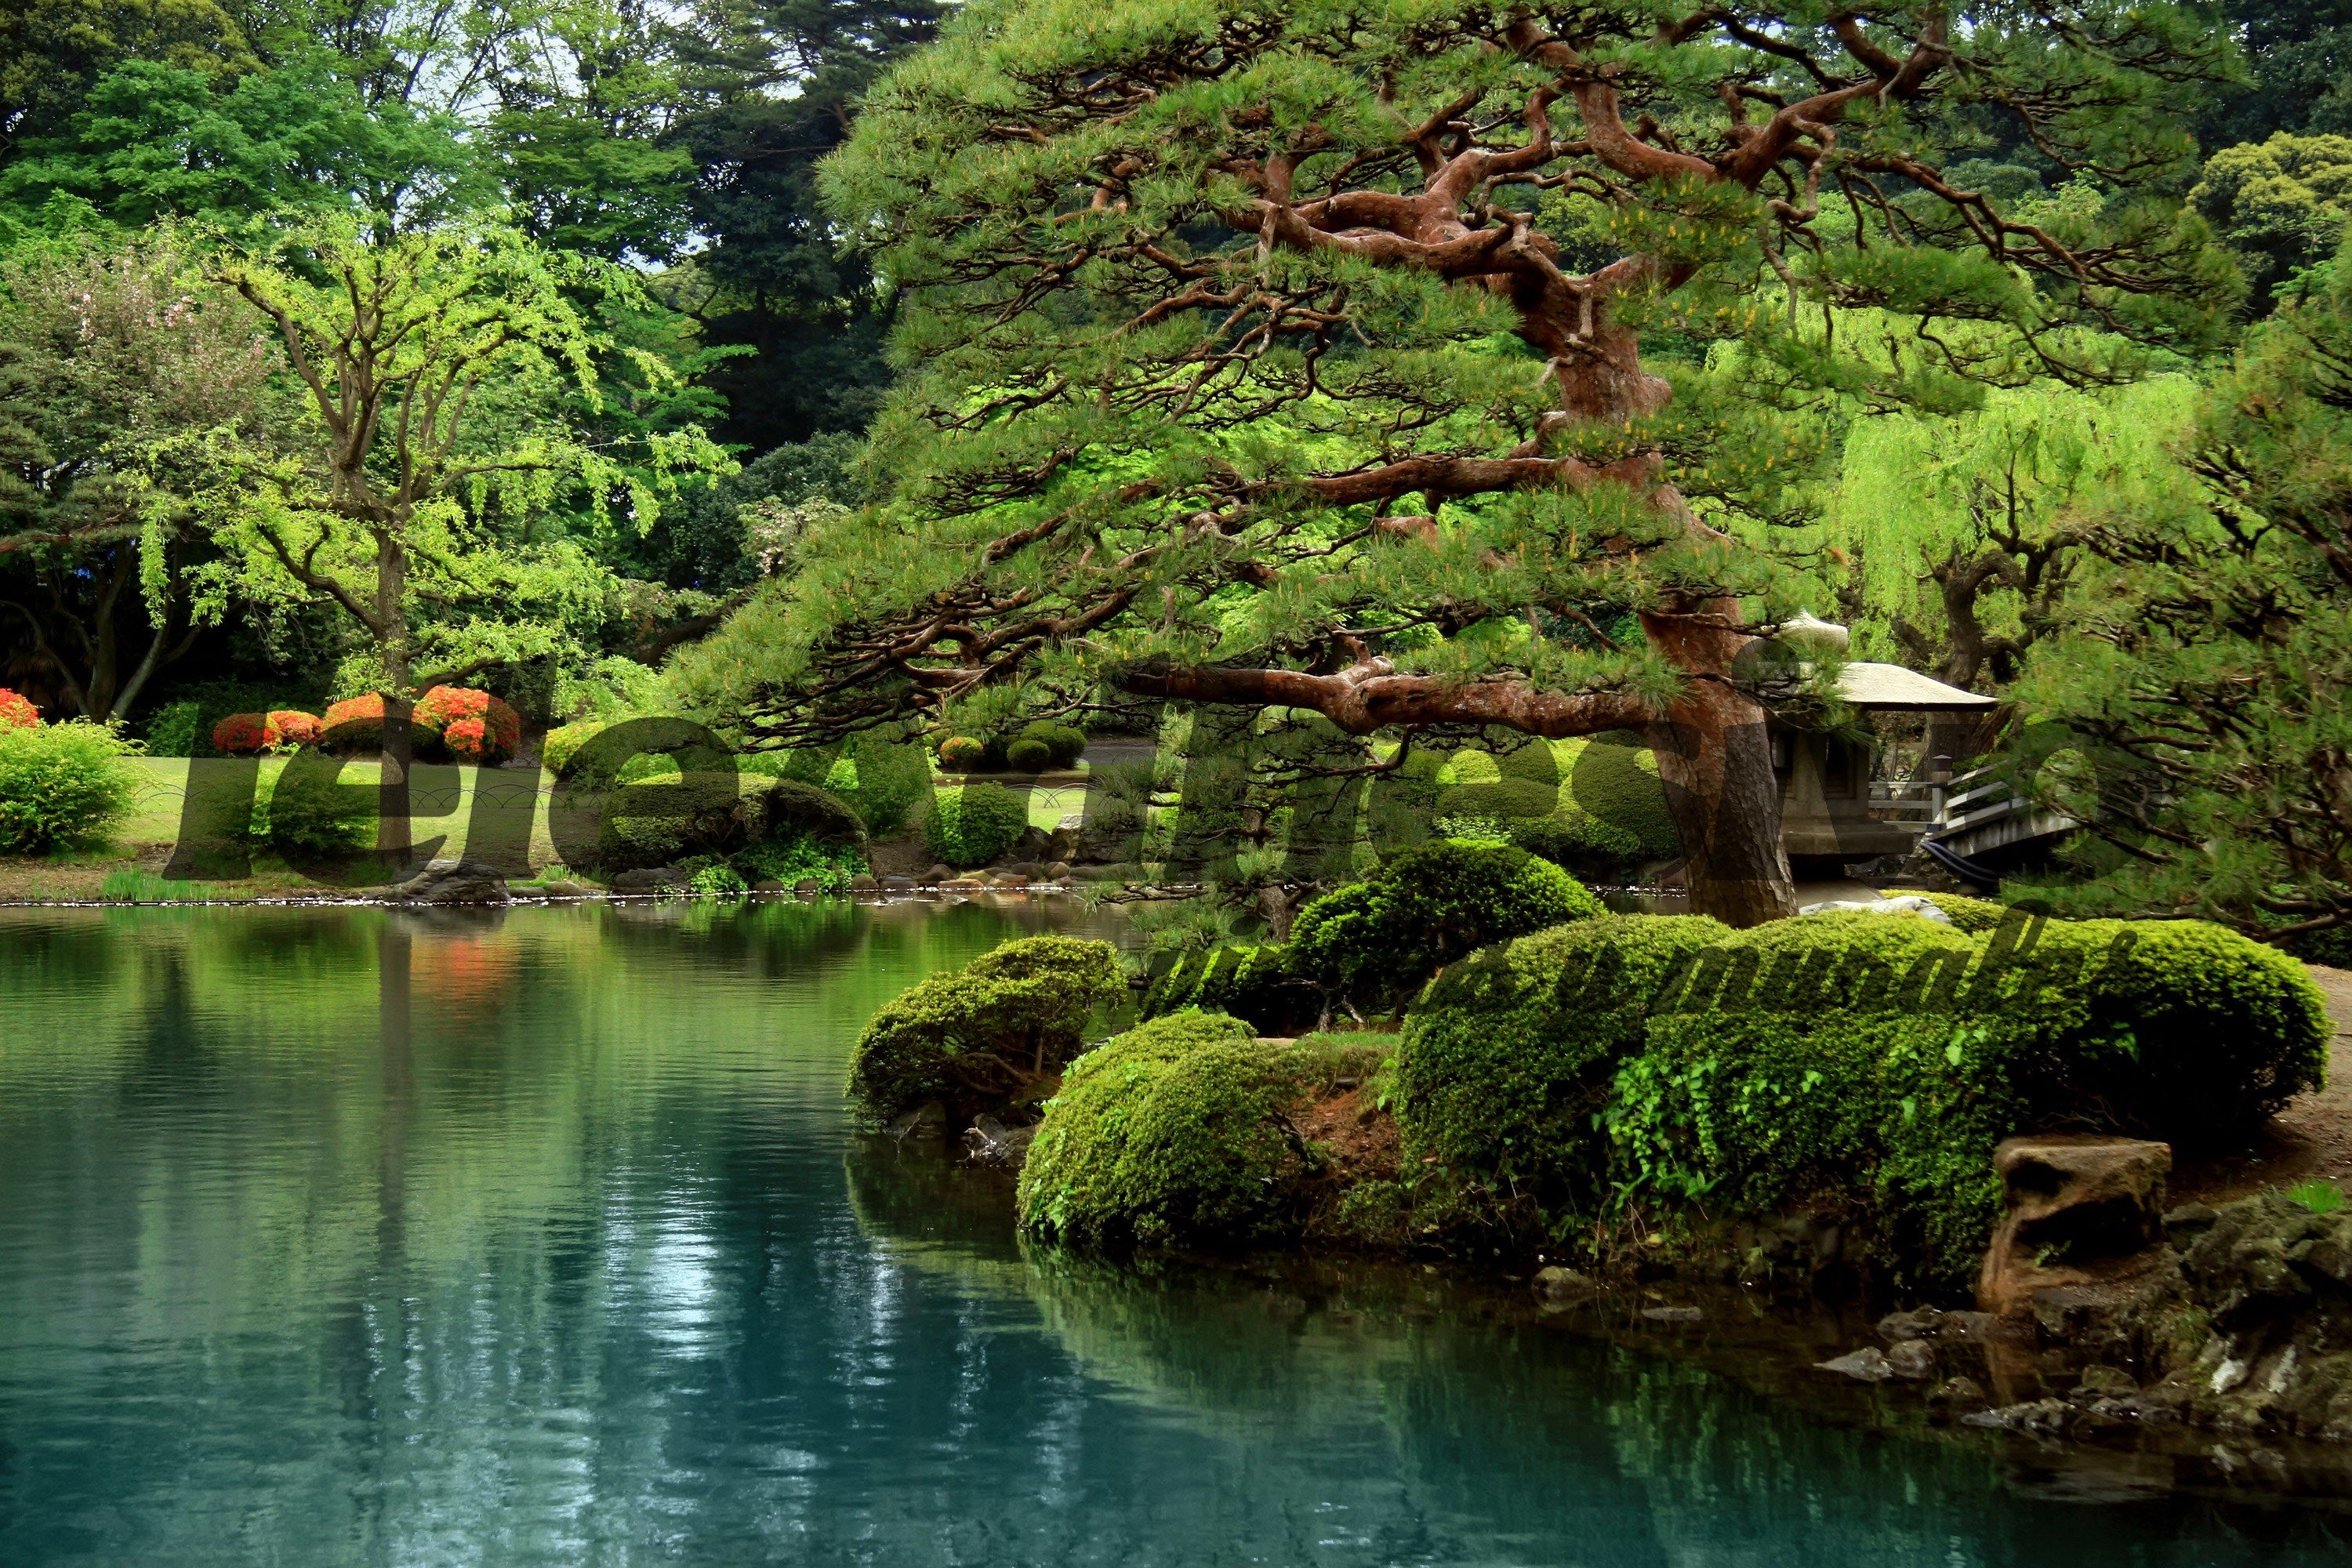 Jardines japoneses buscar con google jardines for Jardines japoneses pequenos